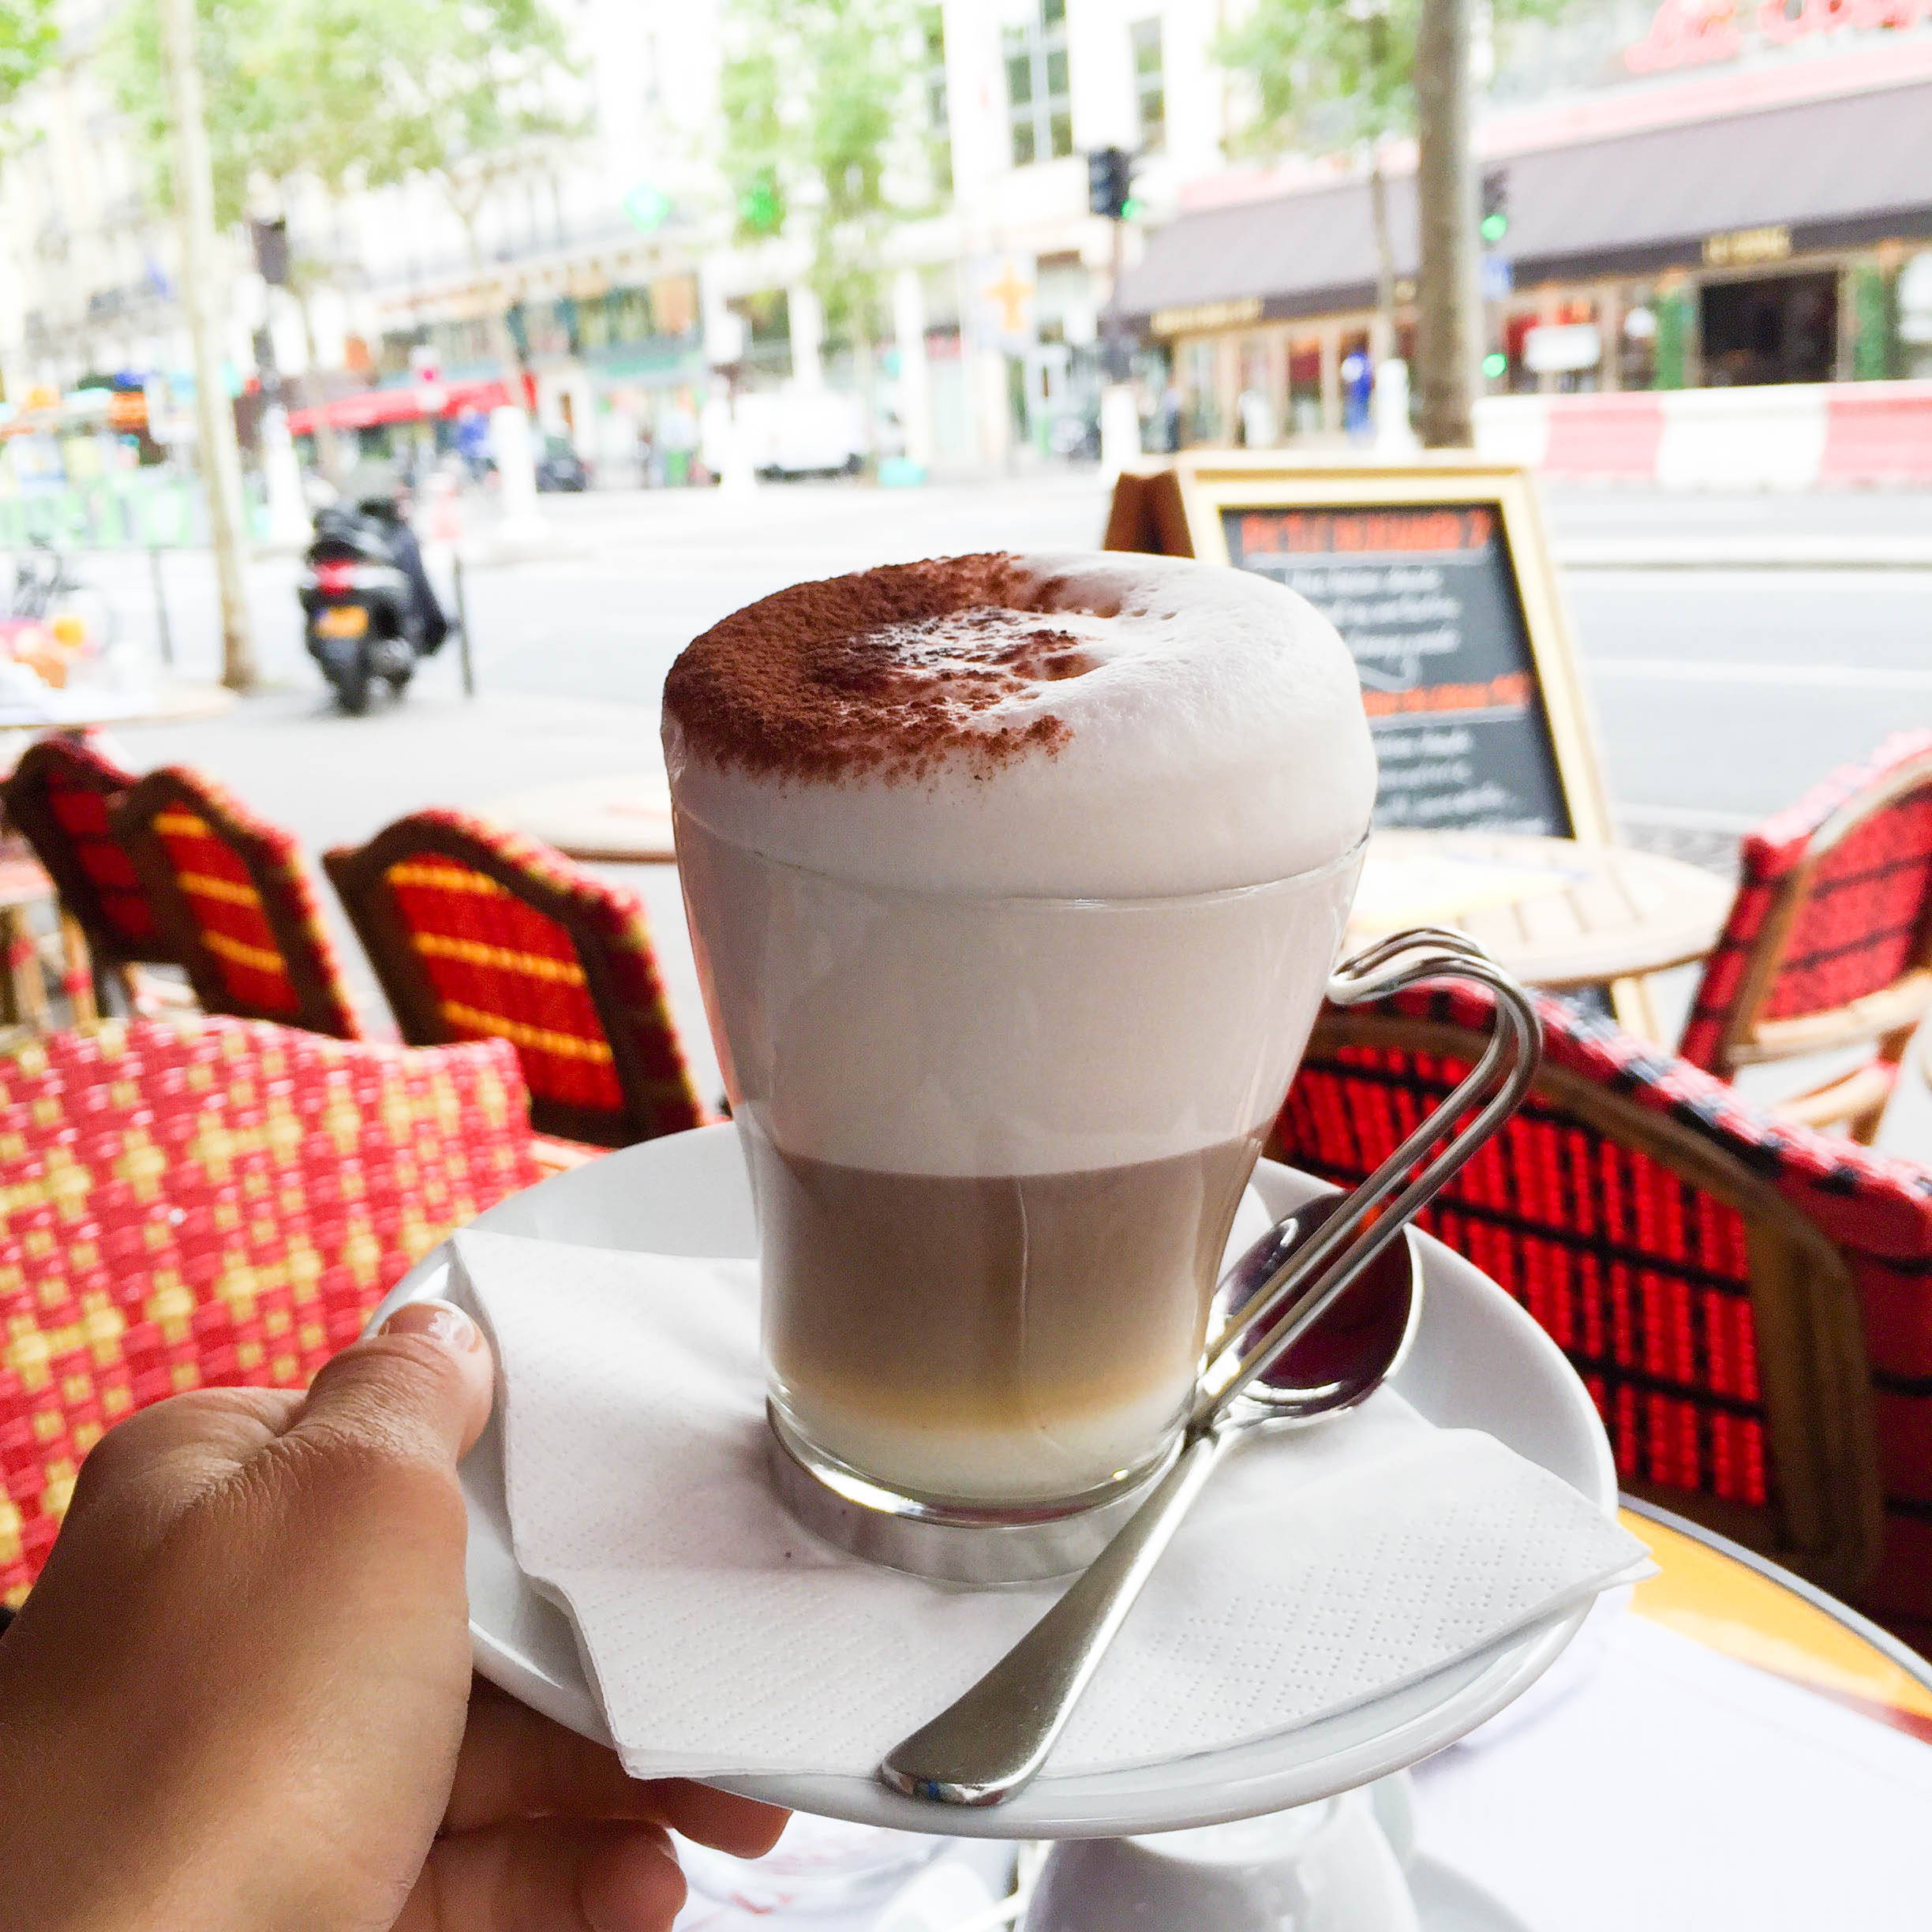 I had a cappuccino every morning and it was amazing. Some afternoons I would make an excuse to get another. I think I can honestly say, sitting at a bistro in Paris, sipping on a cappuccino, editing pictures or writing a blog post would be my definition of living the dream.